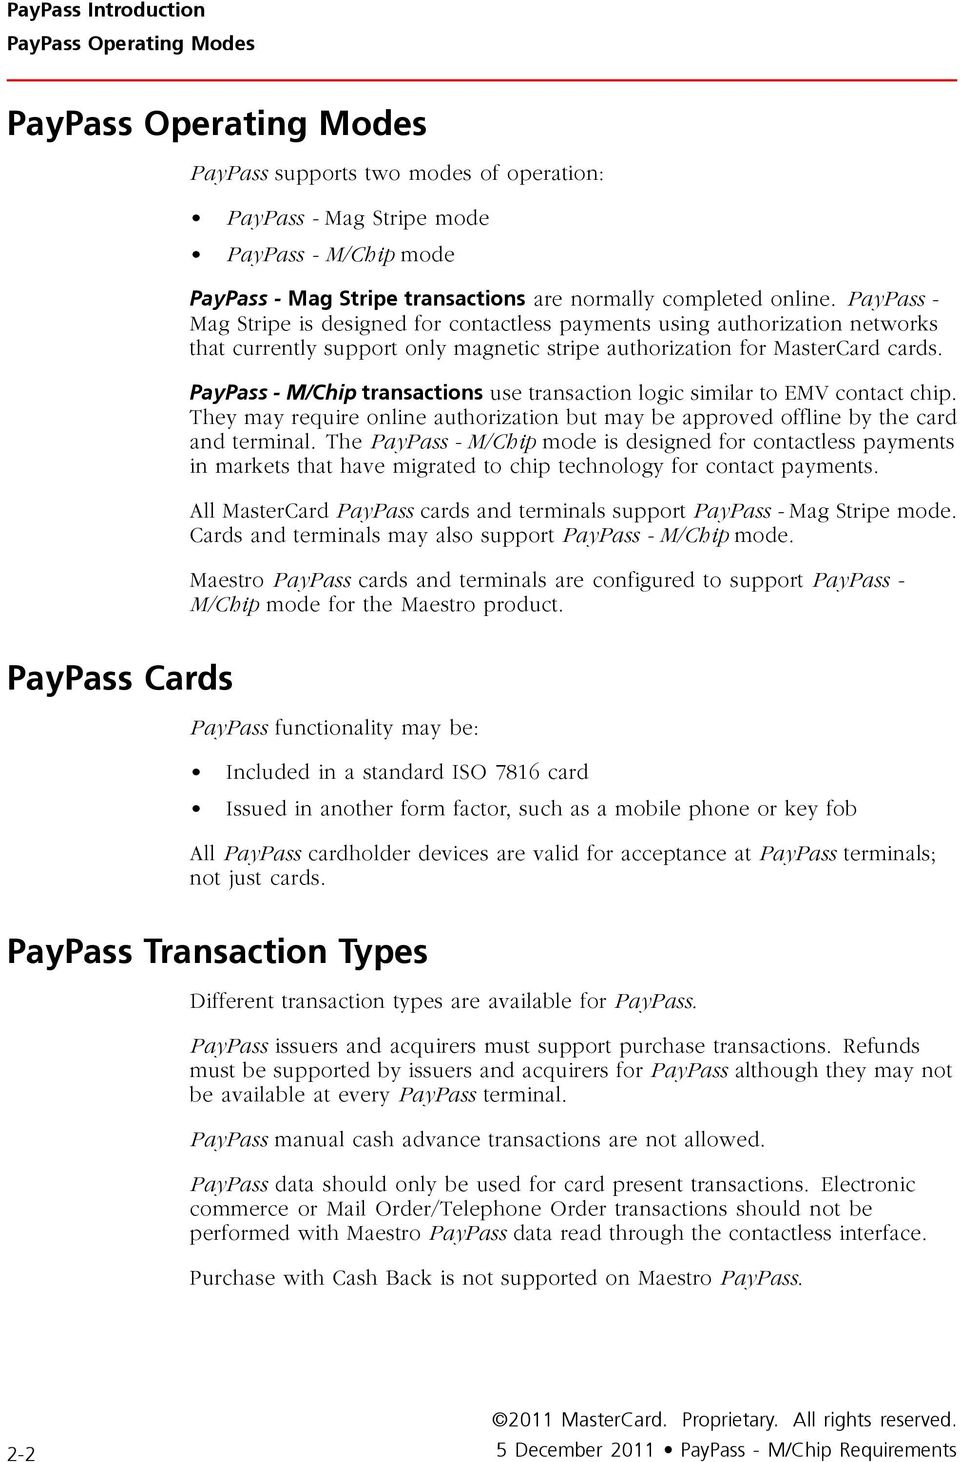 PayPass - M/Chip transactions use transaction logic similar to EMV contact chip. They may require online authorization but may be approved offline by the card and terminal.